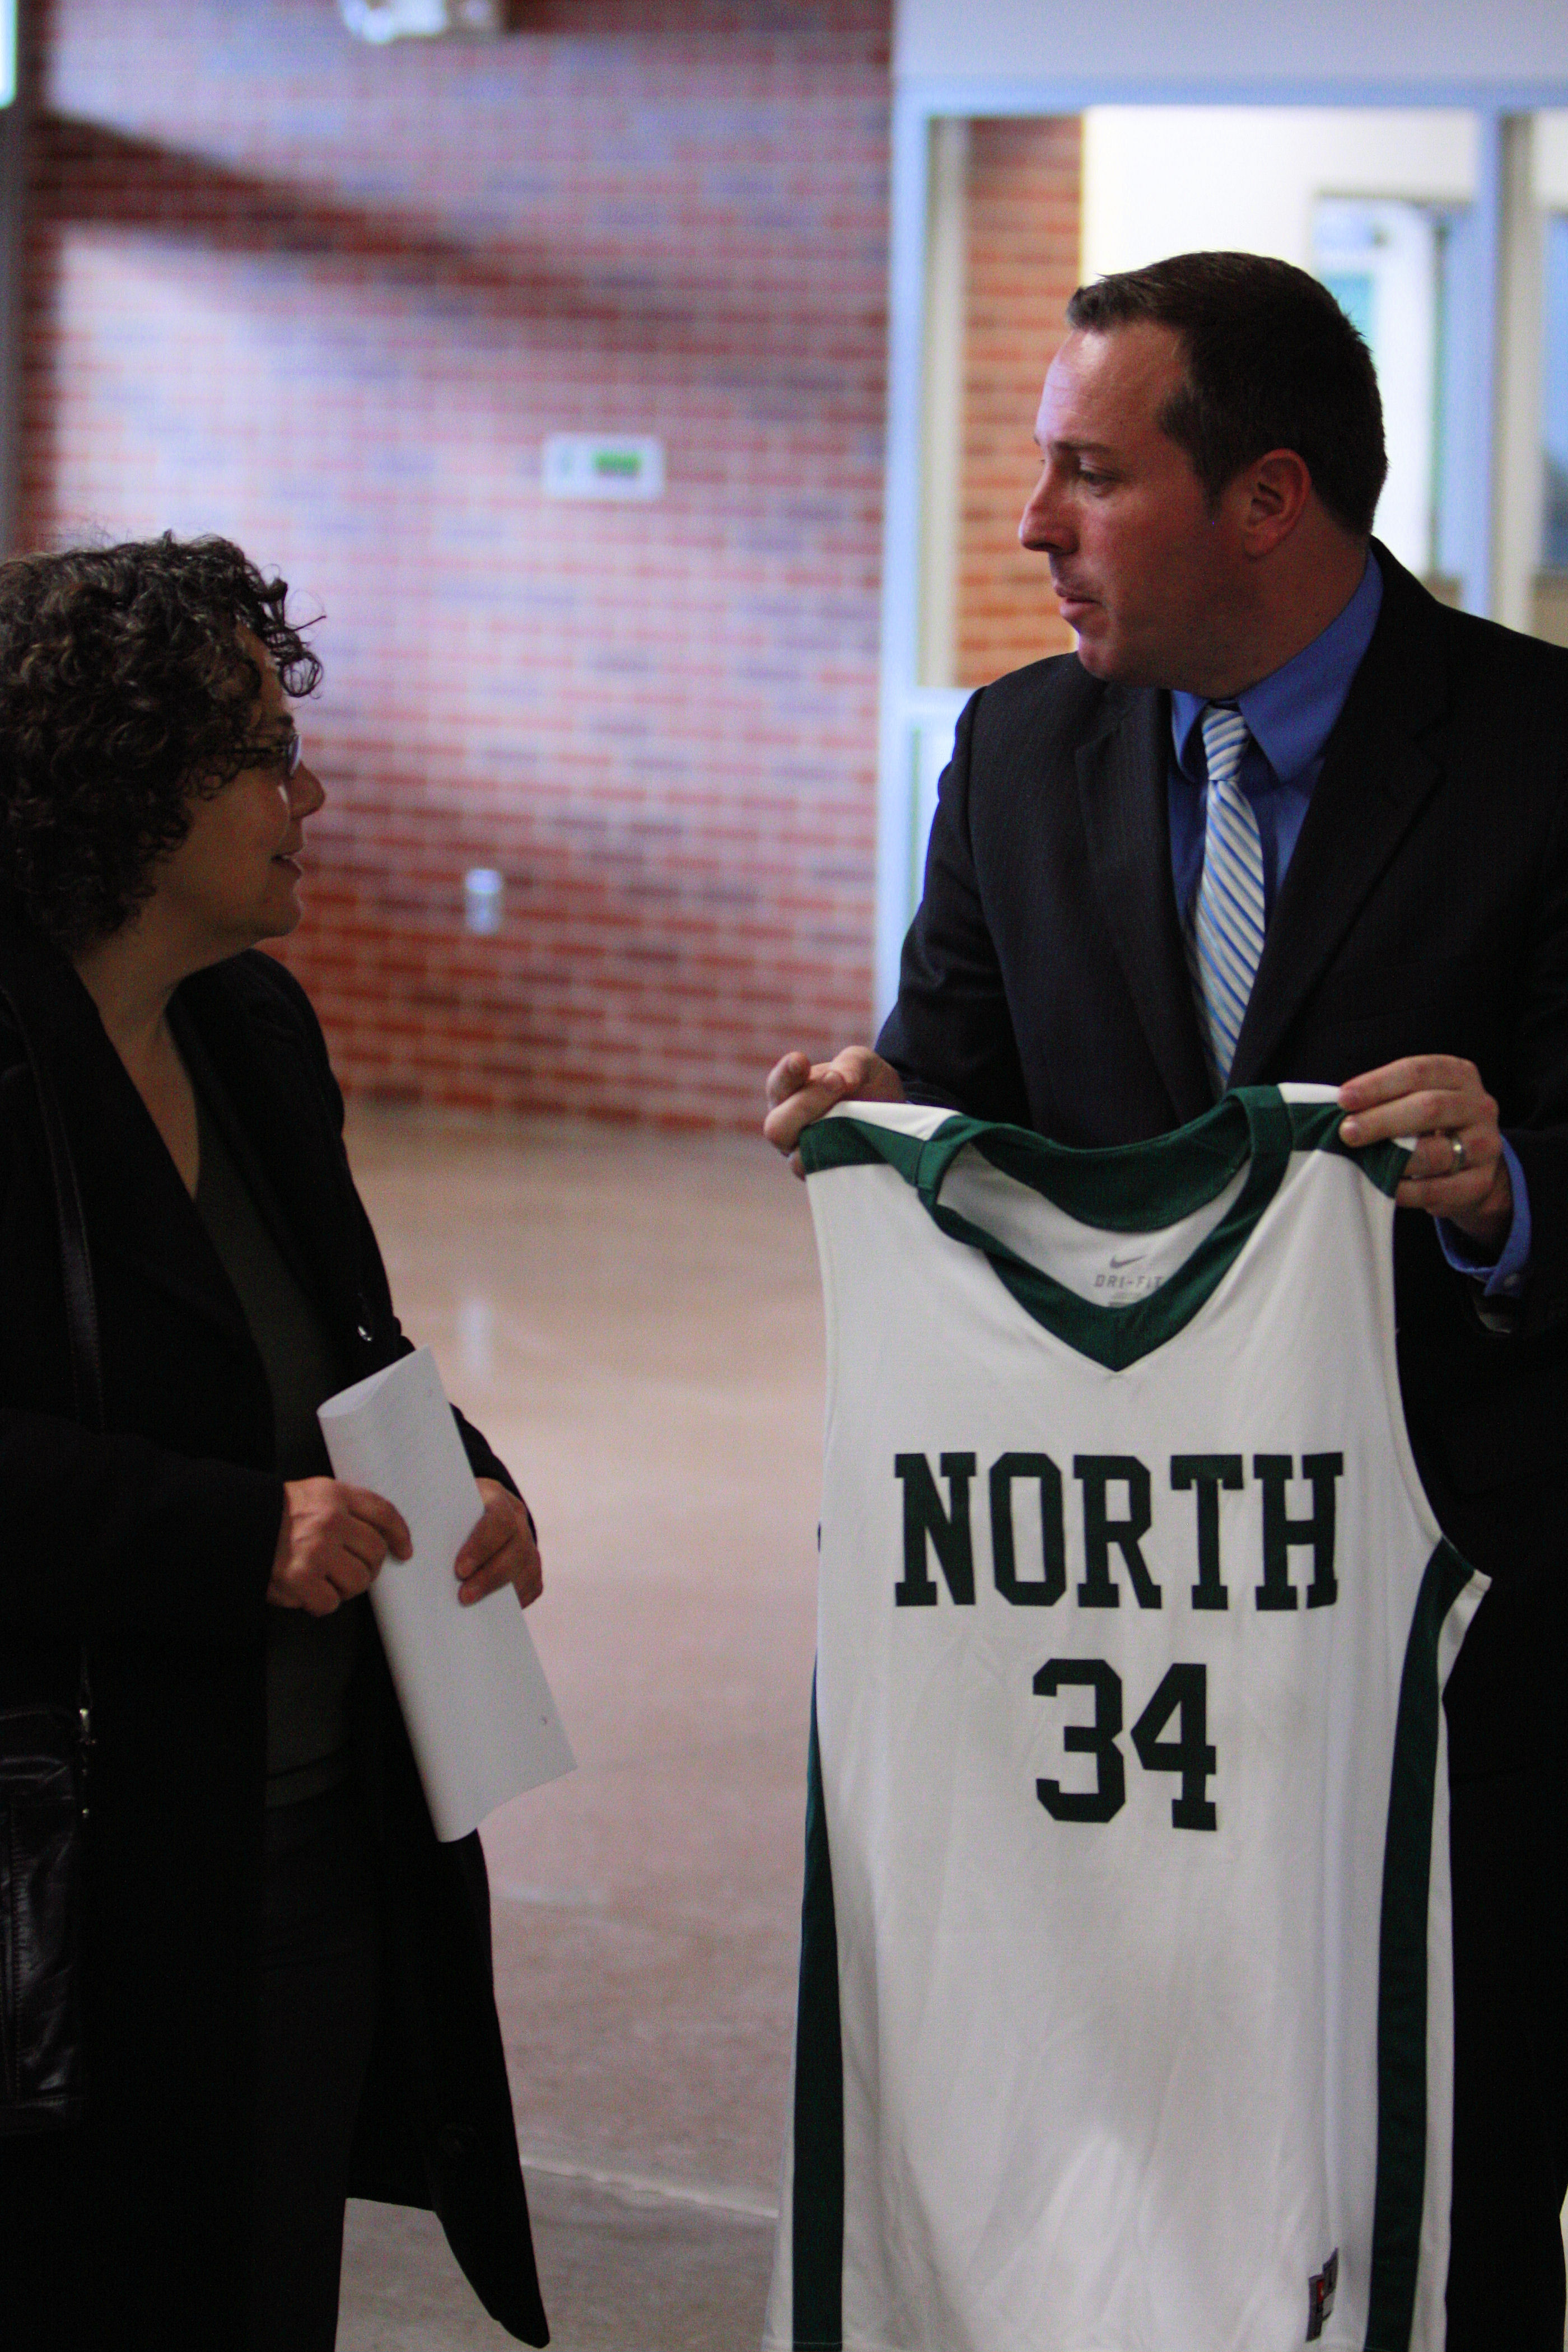 Chair Sutley at North High School in Des Moines, Iowa